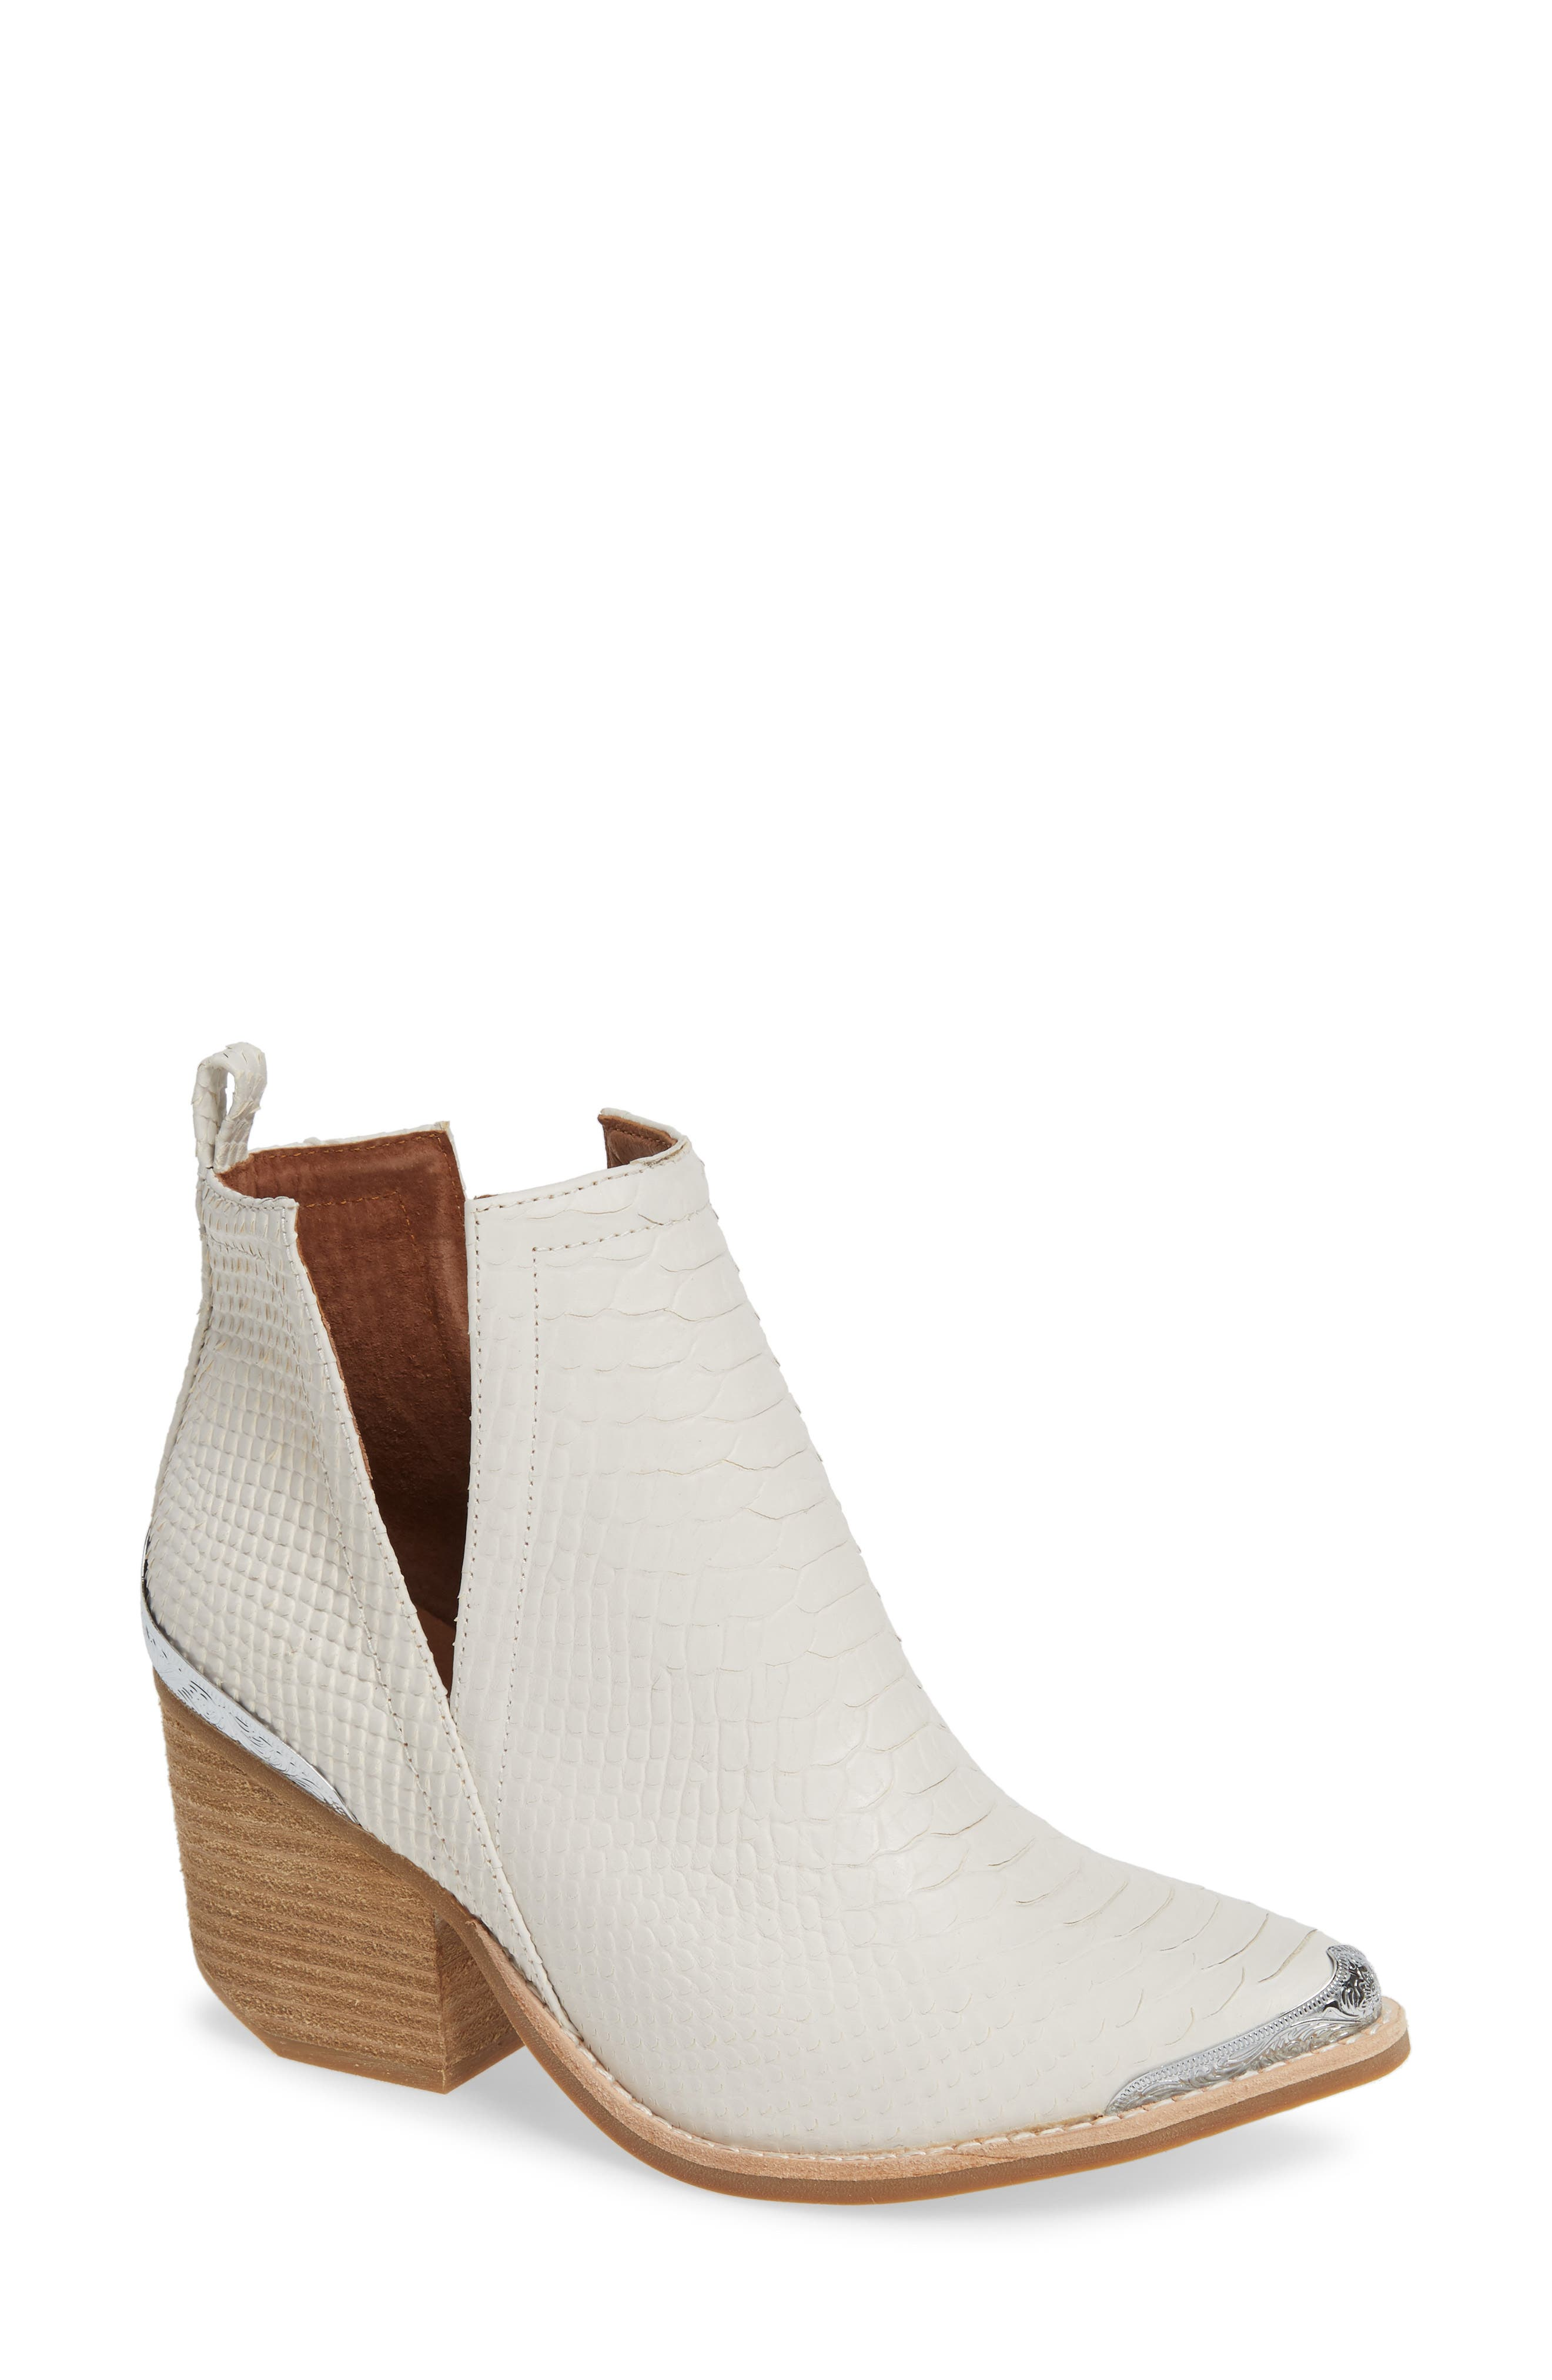 JEFFREY CAMPBELL Cromwell Cutout Western Boot in White Snake Print Leather